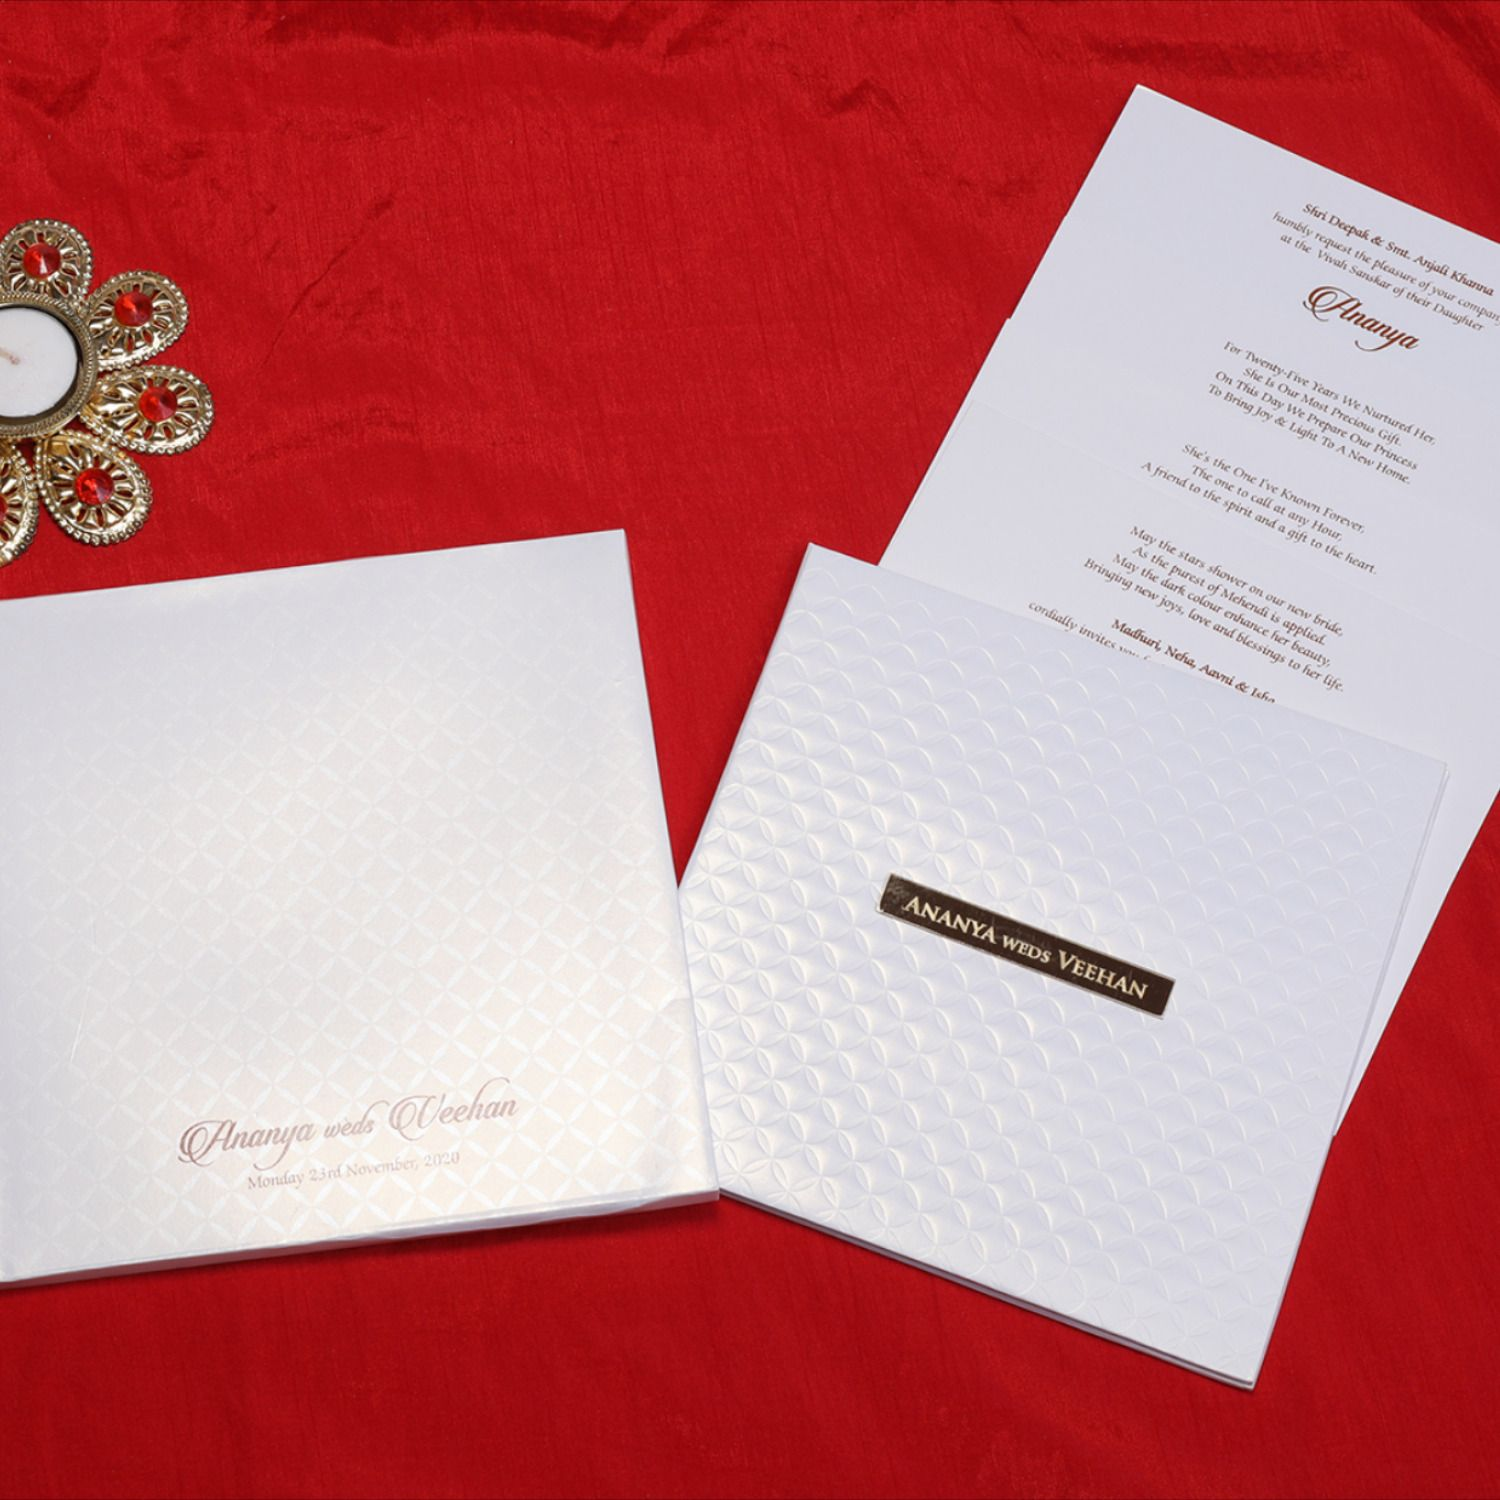 Just shortlist from our wide collection of invitation cards and send your enquiry at Mudrikaa Prints.  #weddingcards #weddinginvite #invitation #bangaloreweddingcard #weddingcardsonline #onlineinvitation #invitationcards #shaadicard #shaadiinvitation